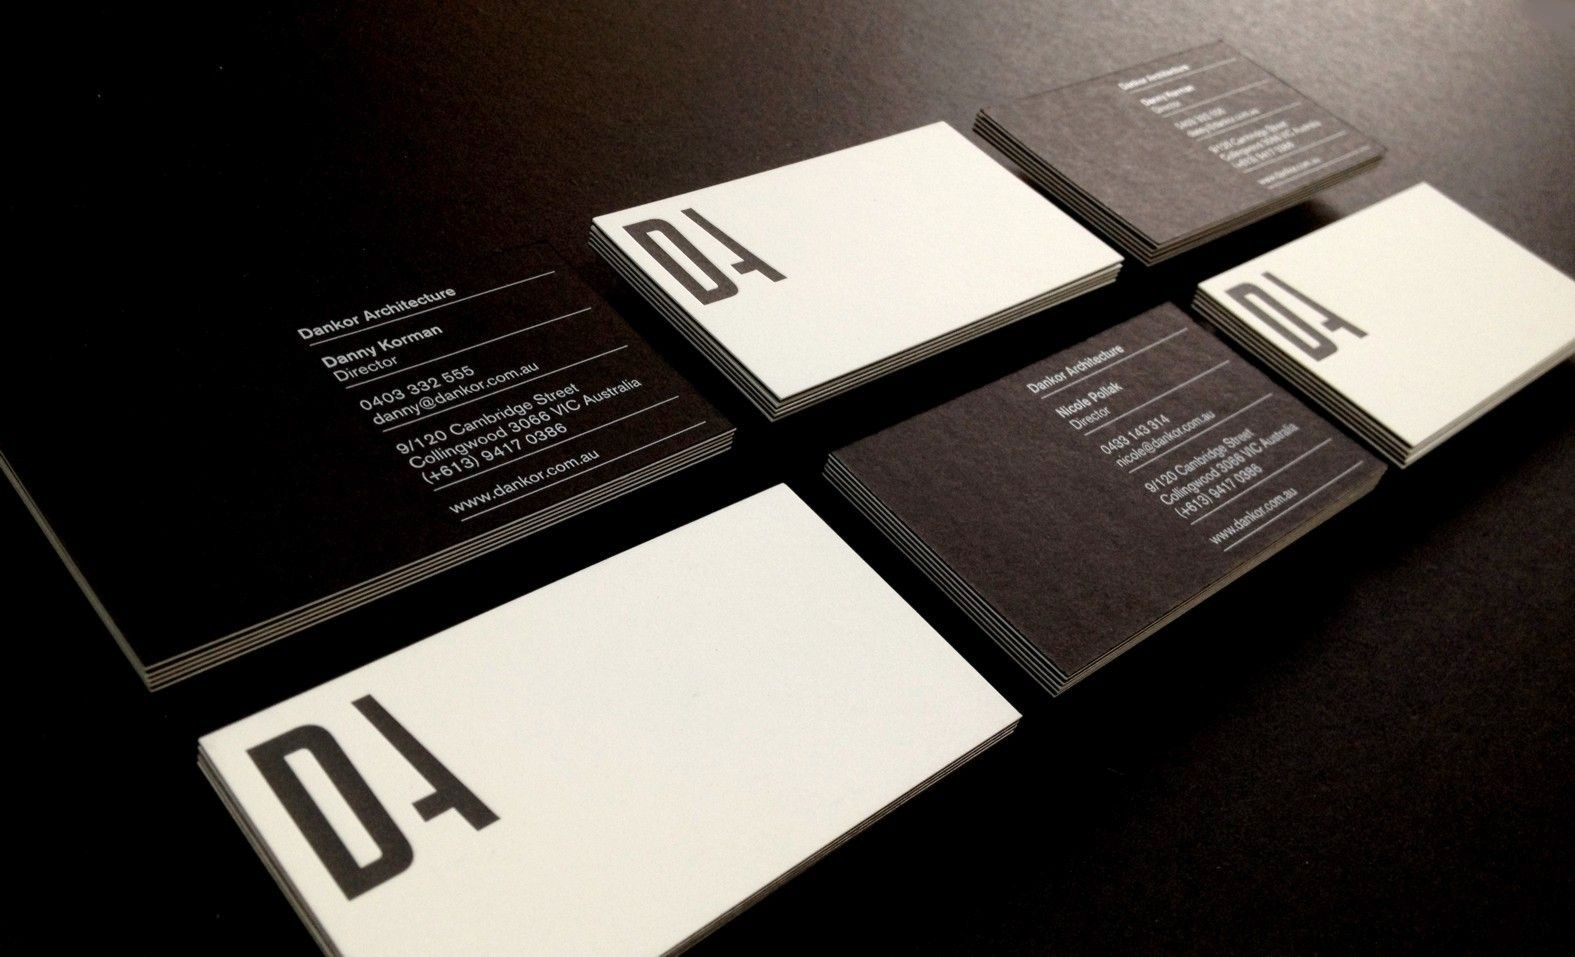 Dankor Architecture Business Cards U2013 Digital White Printed On Notturno  Black Card Then Duplexed To Black Letterpress Printed On Concept Radiance  Card.